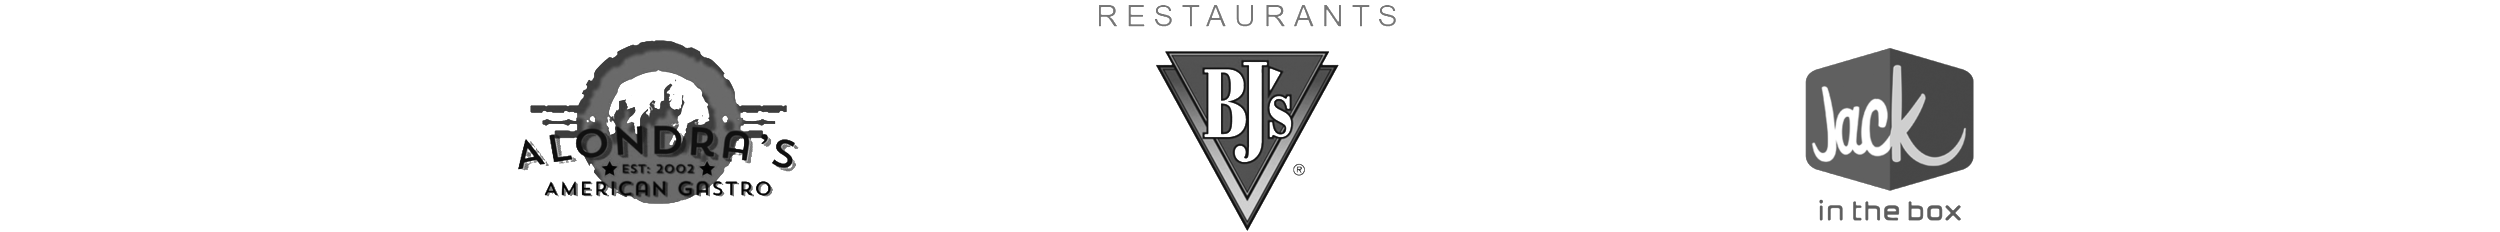 Restaurants: Alondra's, BJ's, and Jack In The Box Logos